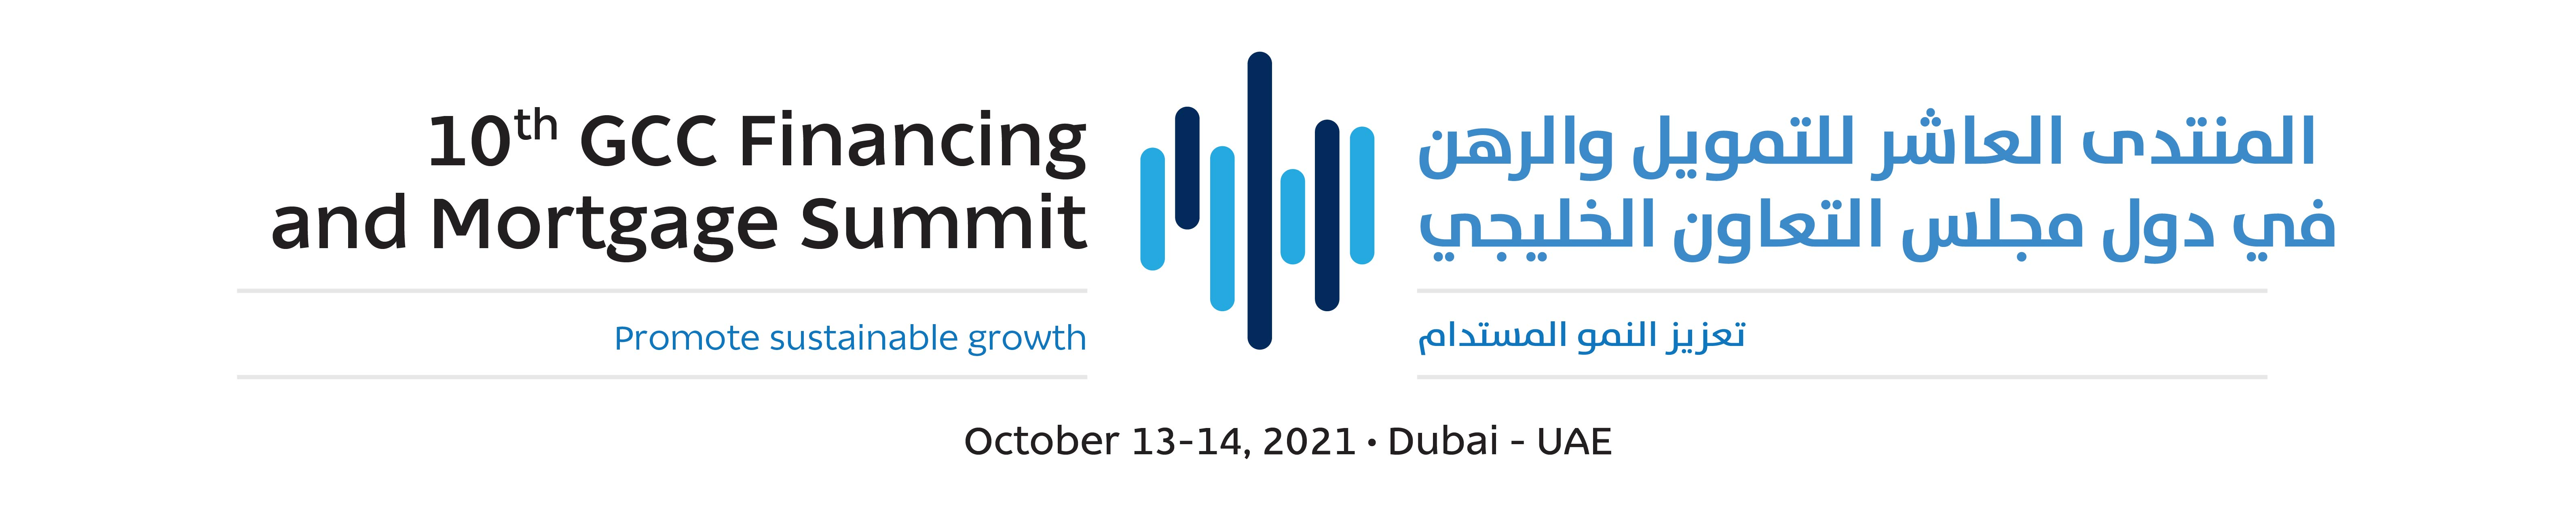 10th GCC Real Estate Financing and Mortgage Summit